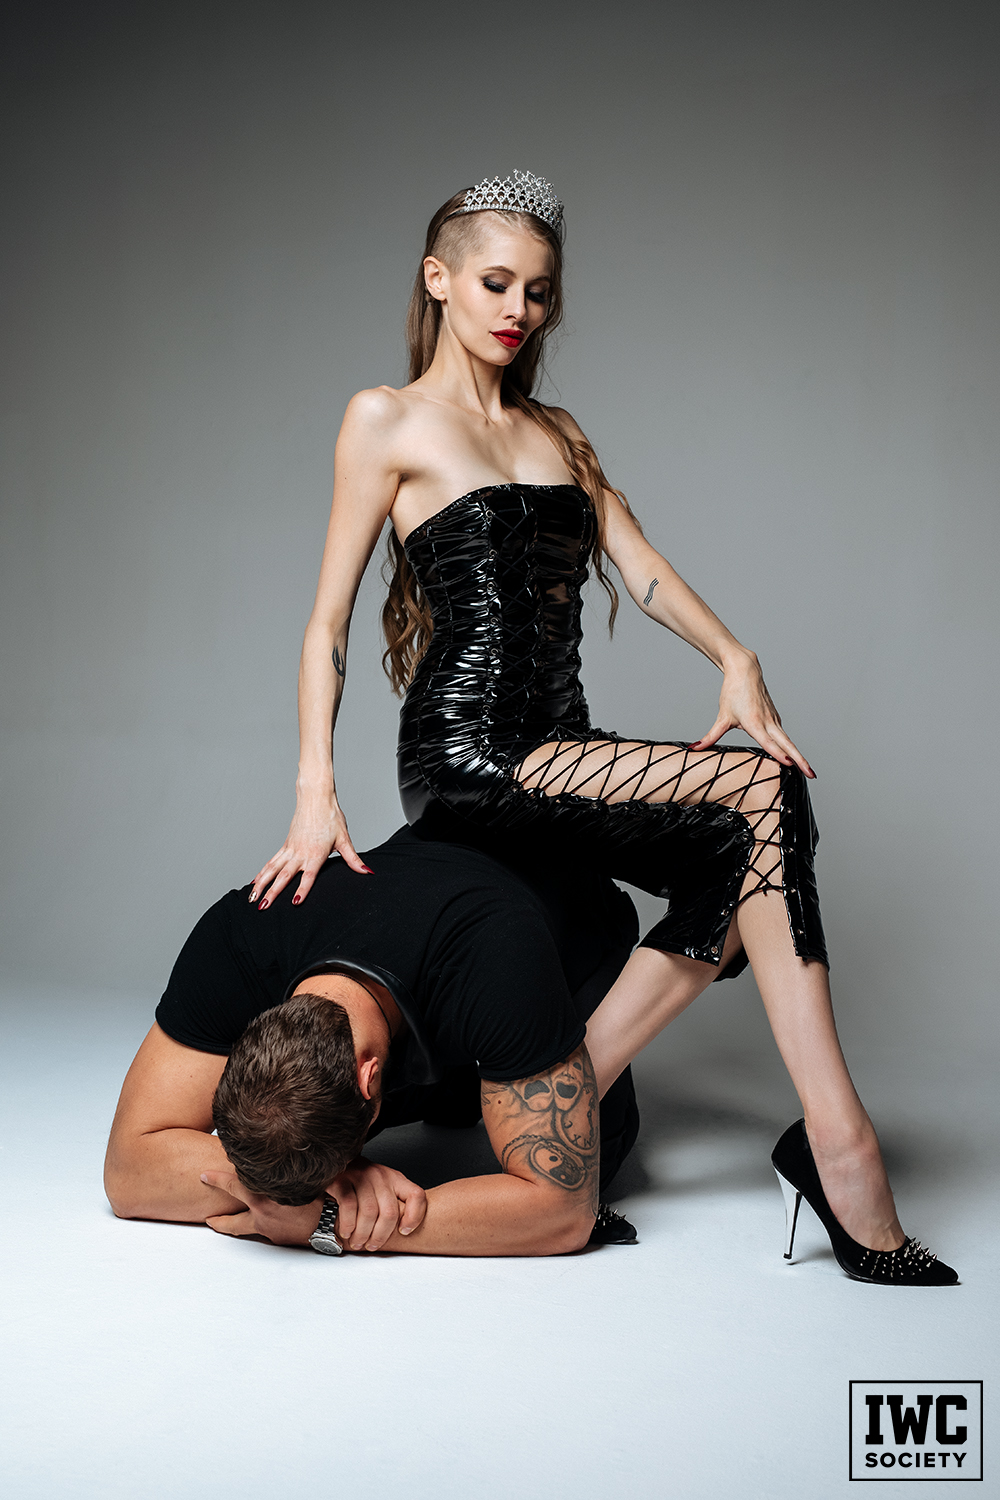 tall financial dominatrix Goddess Kyaa wearing a crown and sitting on her slave as human furniture